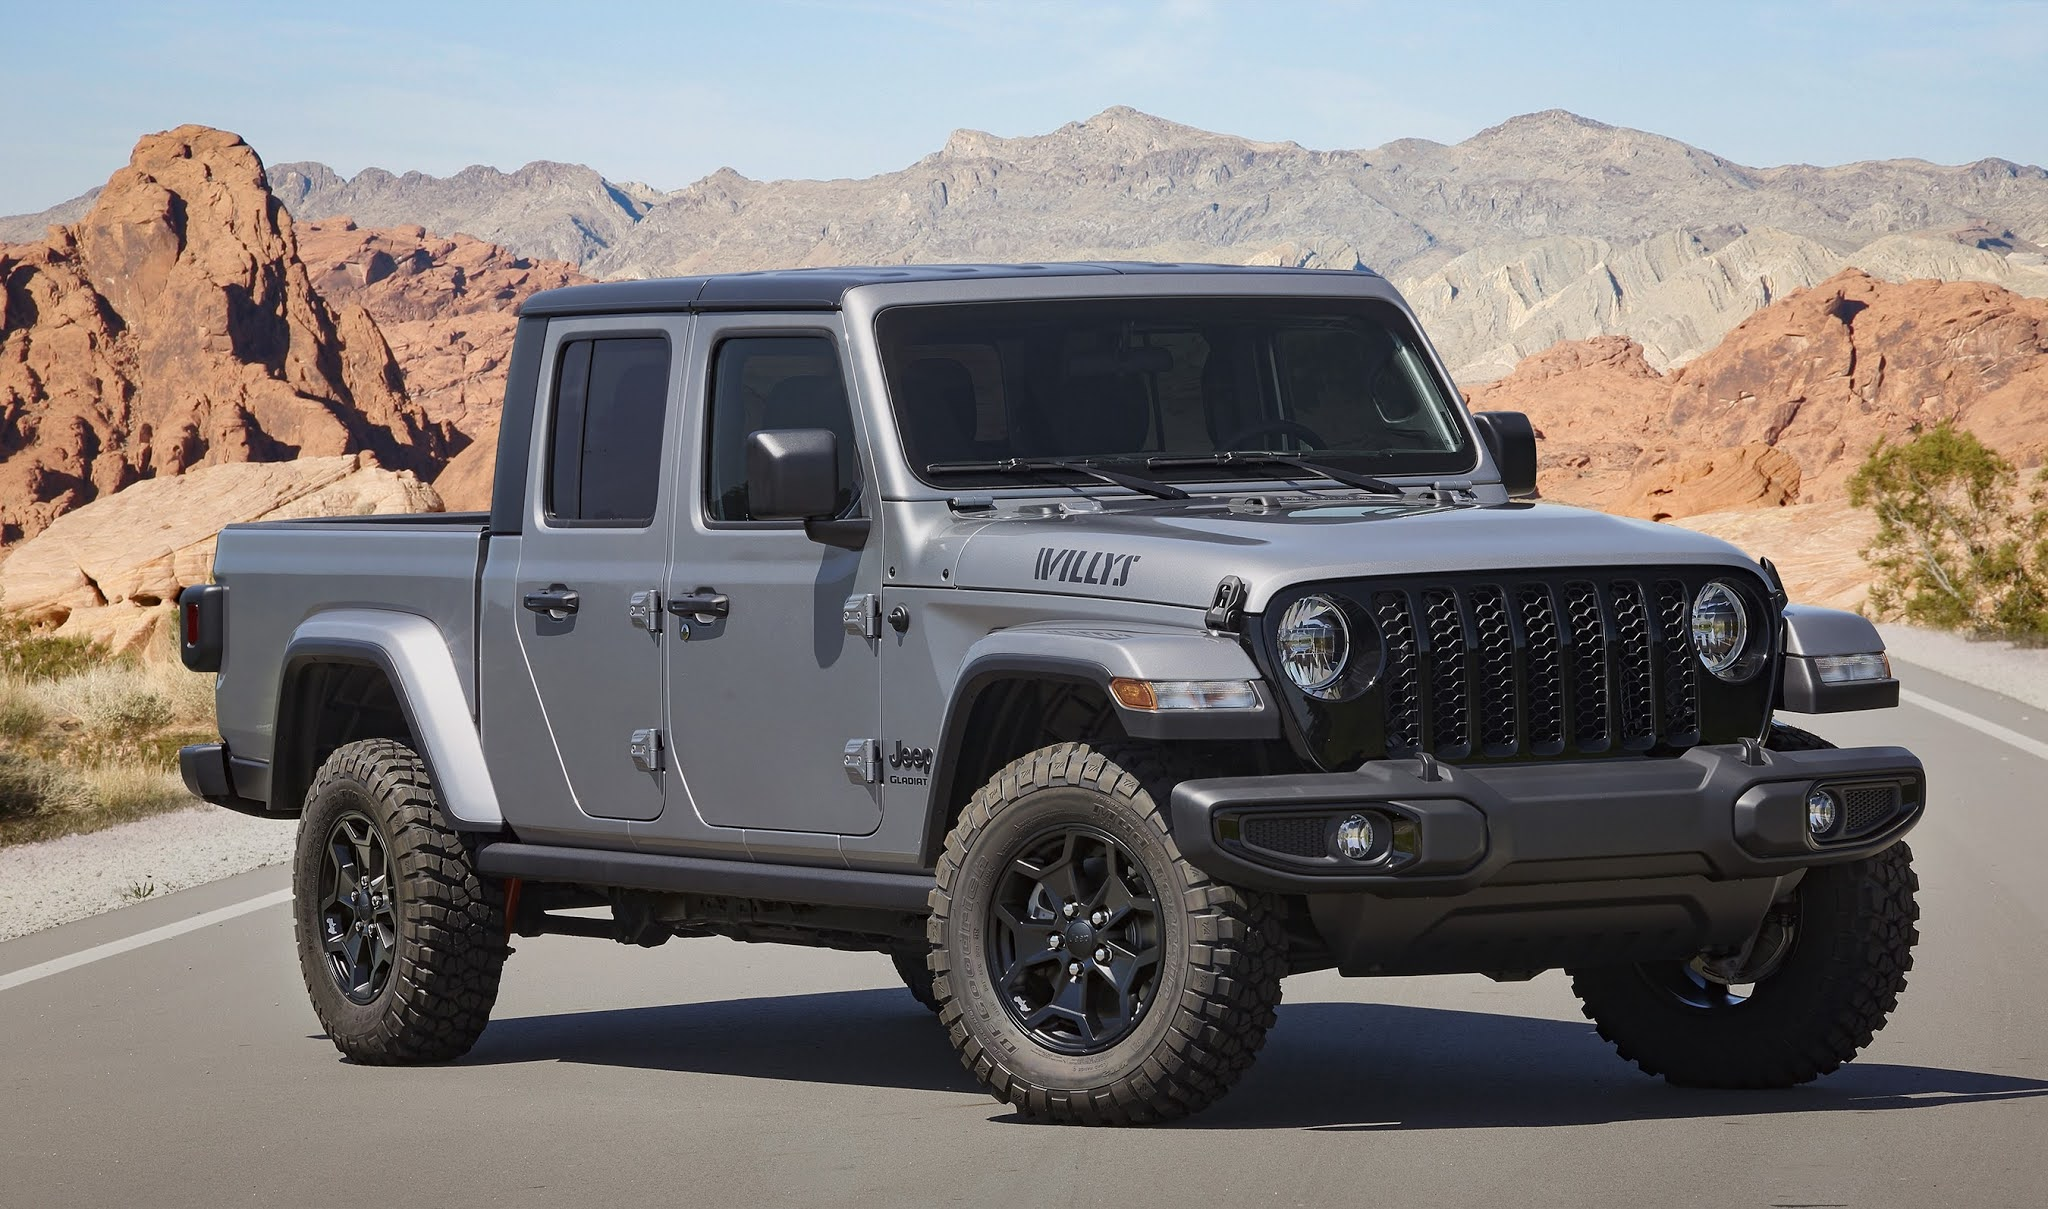 2021 Jeep Gladiator Willys Debuts With Unique Content and Increased Capability